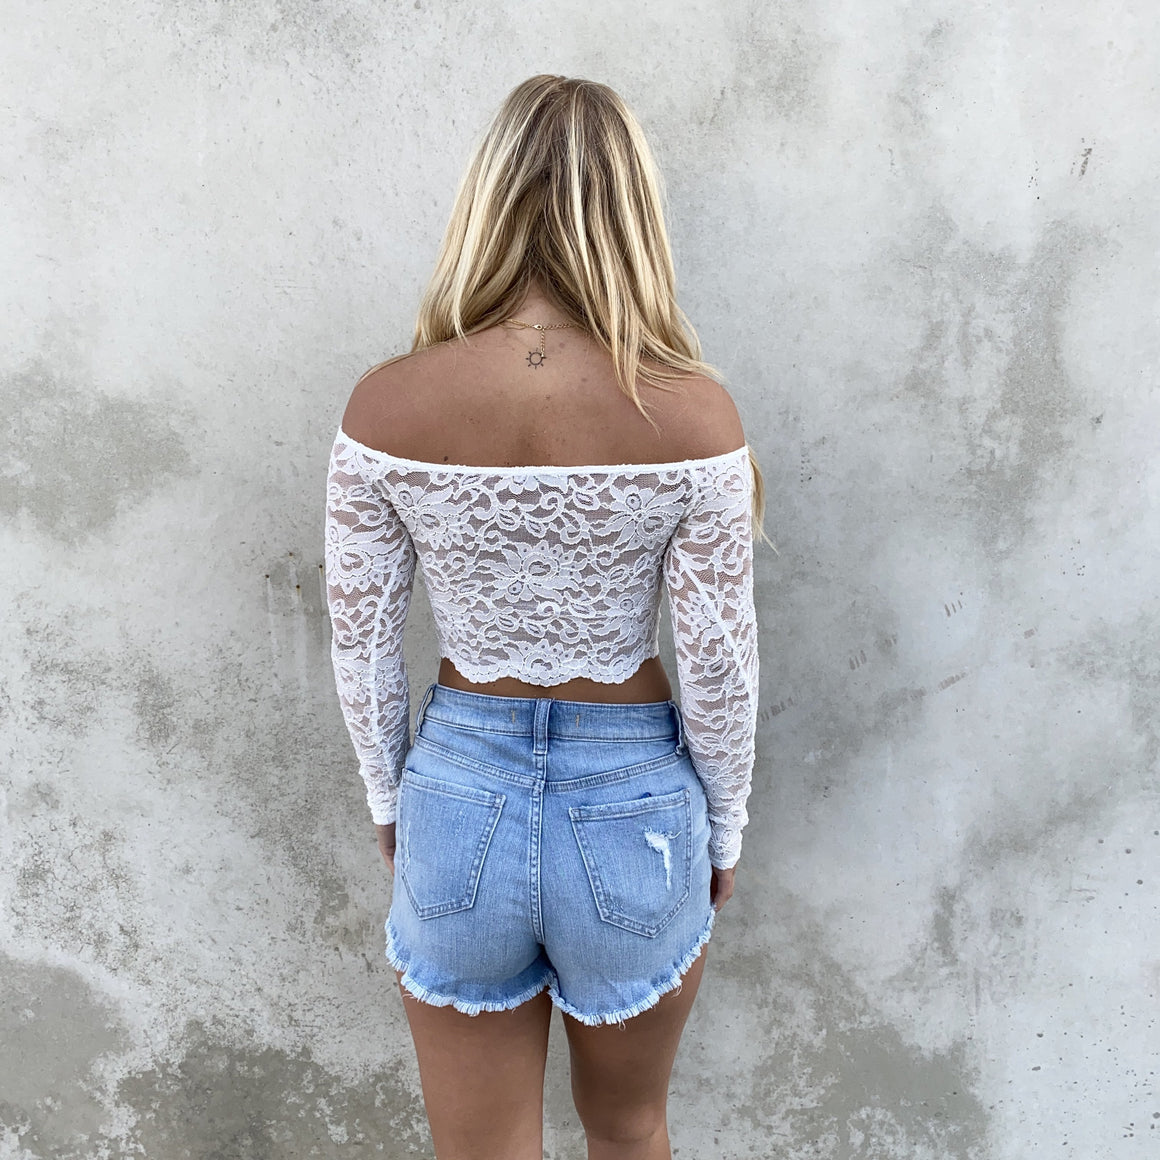 At My Own Lace White Floral Crop Top